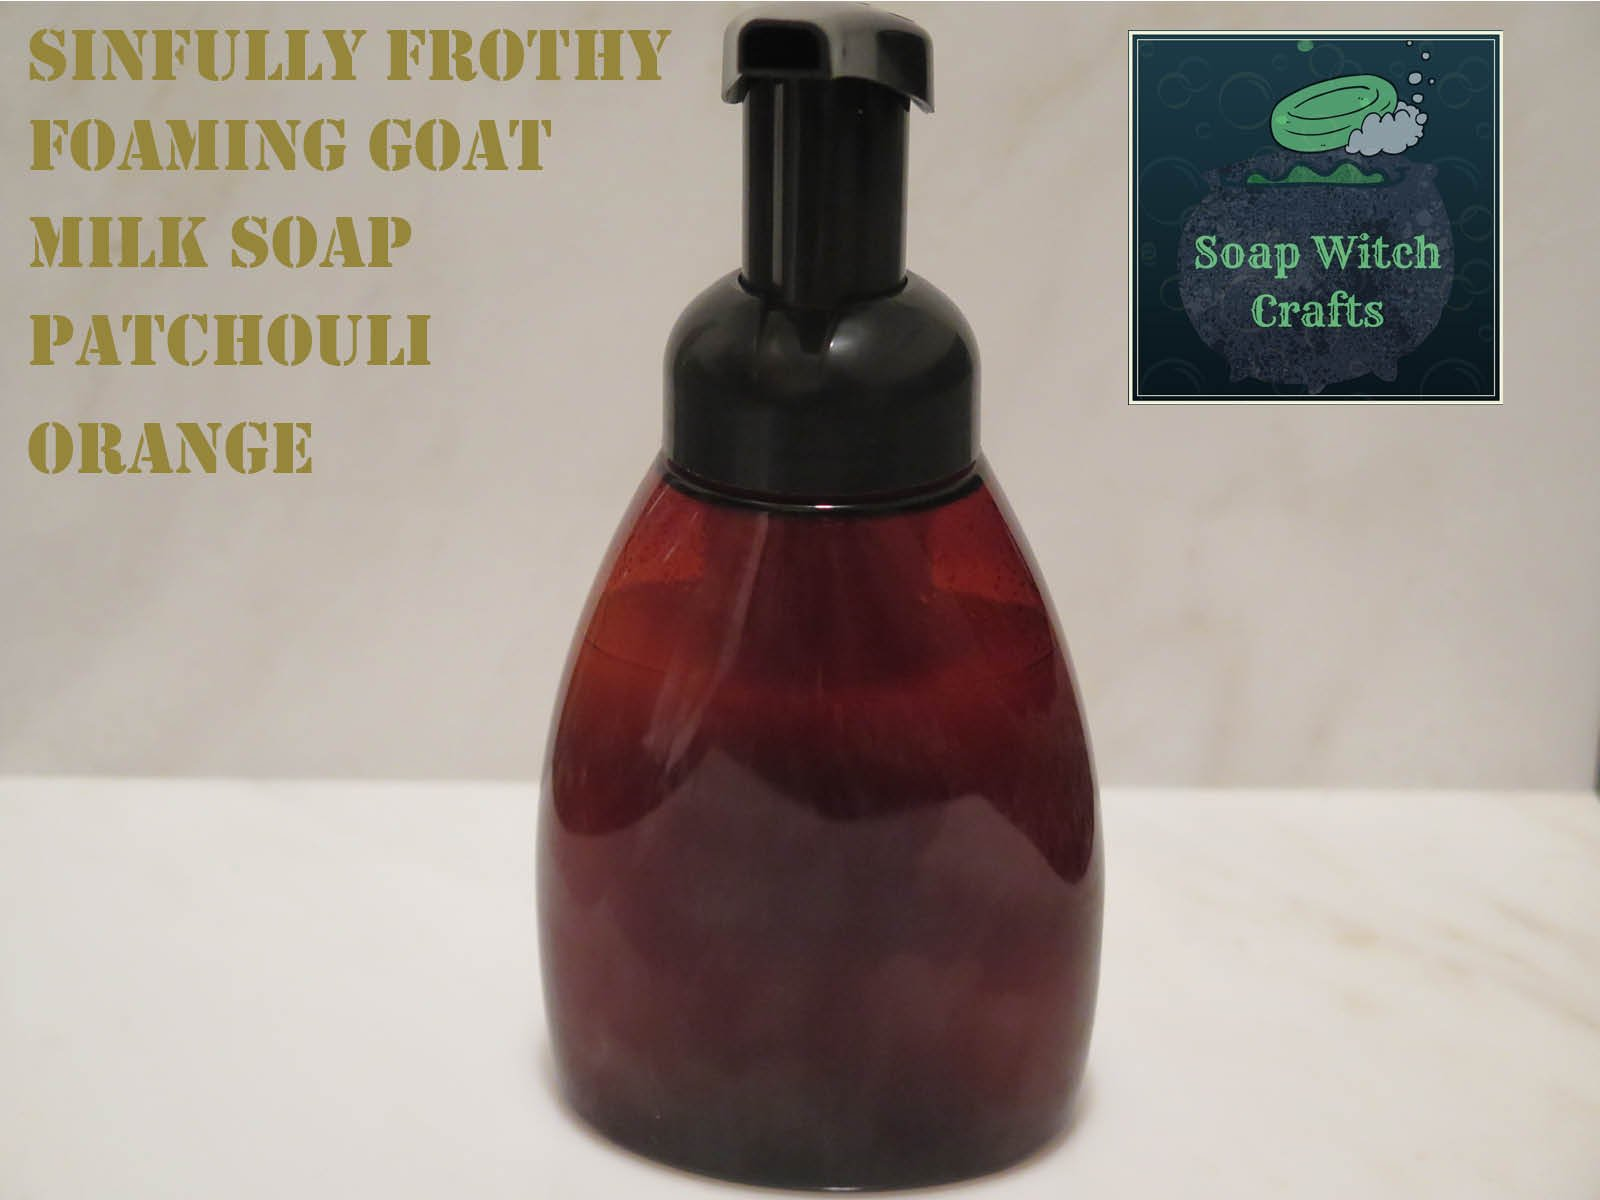 Sinfully Frothy Foaming Goat Milk Soap - Patchouli Orange Scented